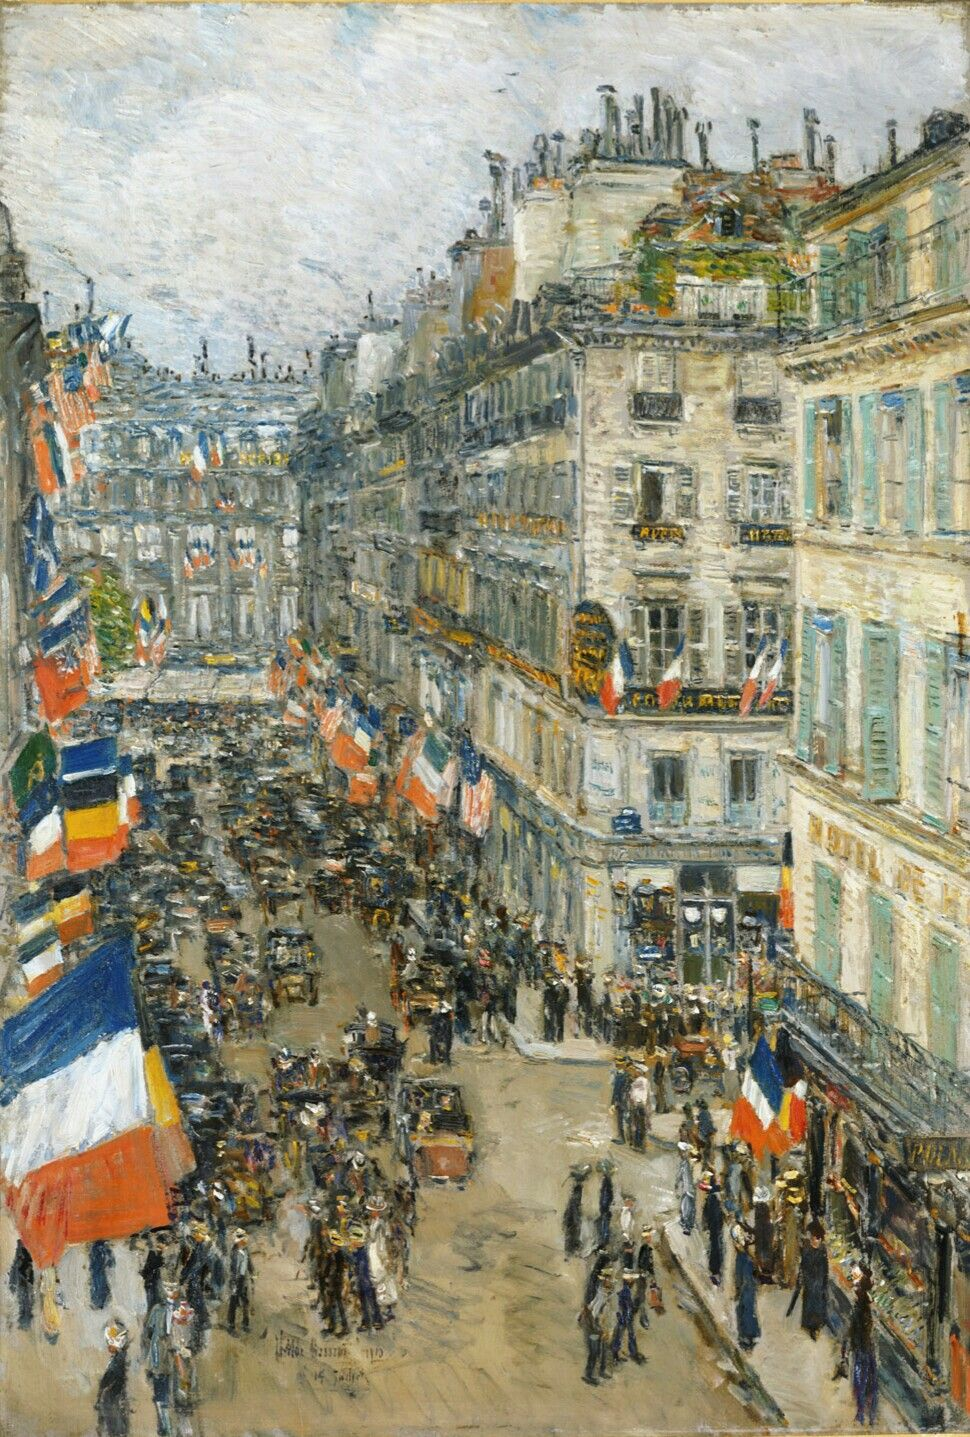 Details about hassam garden painting ceramic bathroom tile murals 2 -  July Fourteenth Rue Daunou 1910 Painting By Childe Hassam American